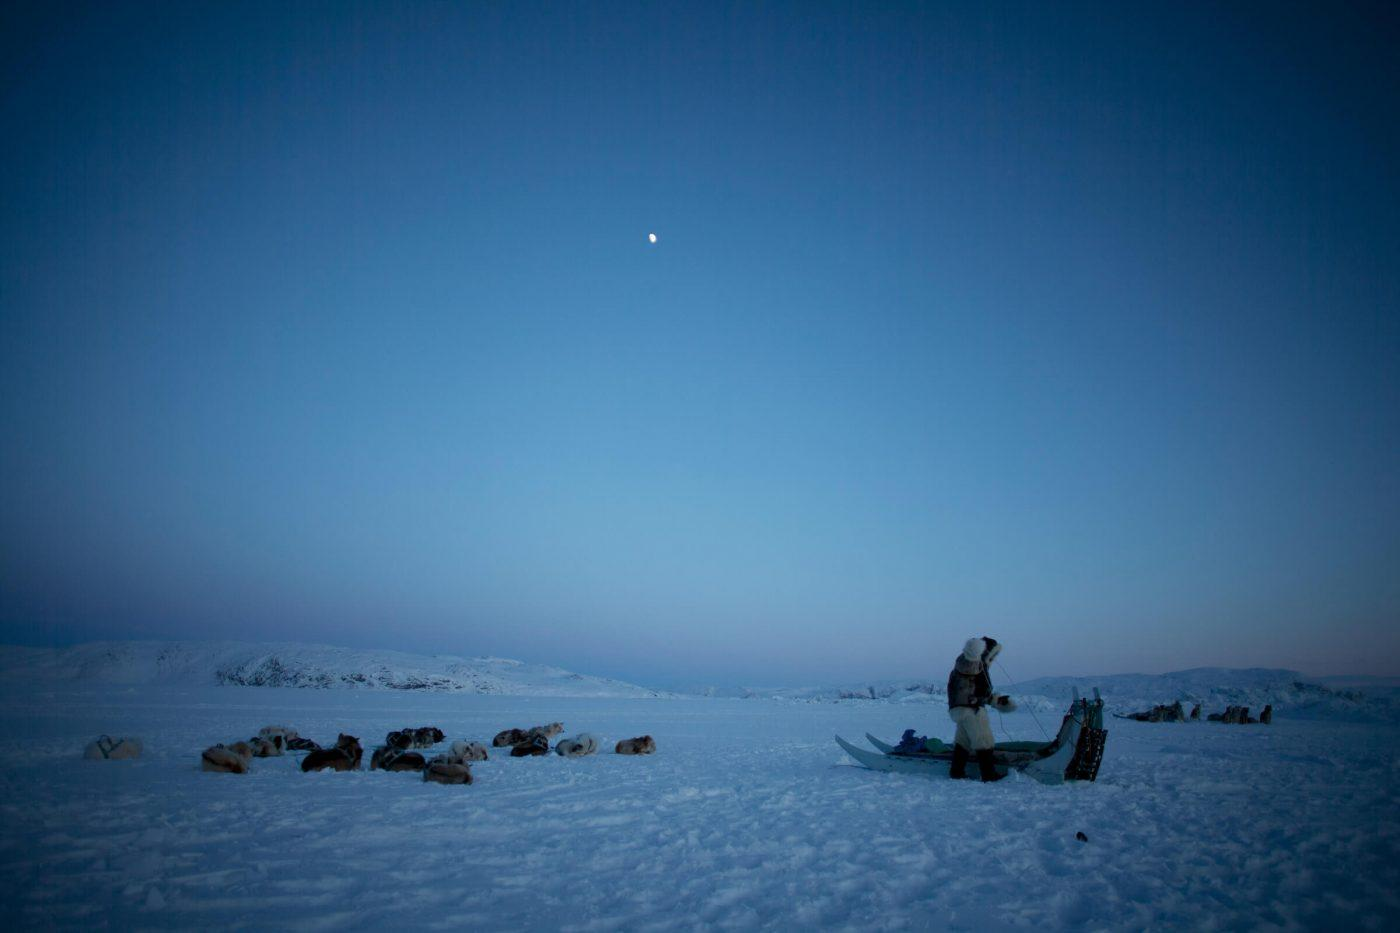 Dog sled driver and dogs, dawn. By David Trood